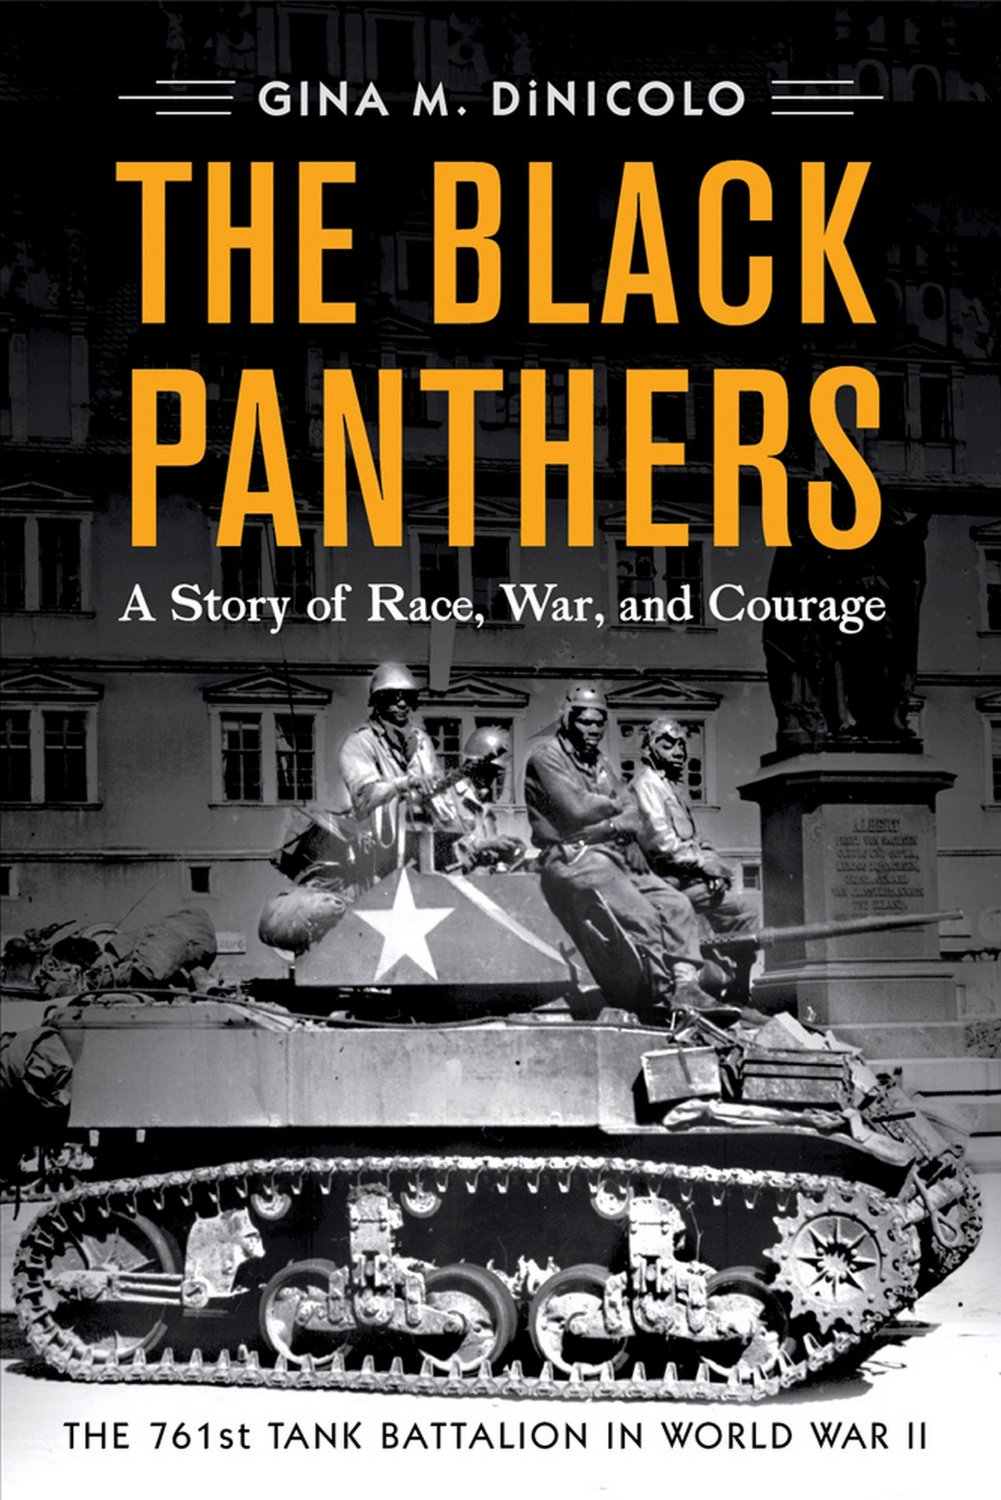 The Black Panthers: A Story of Race, War, and Courage-the 761st Tank Battalion in World War II free download